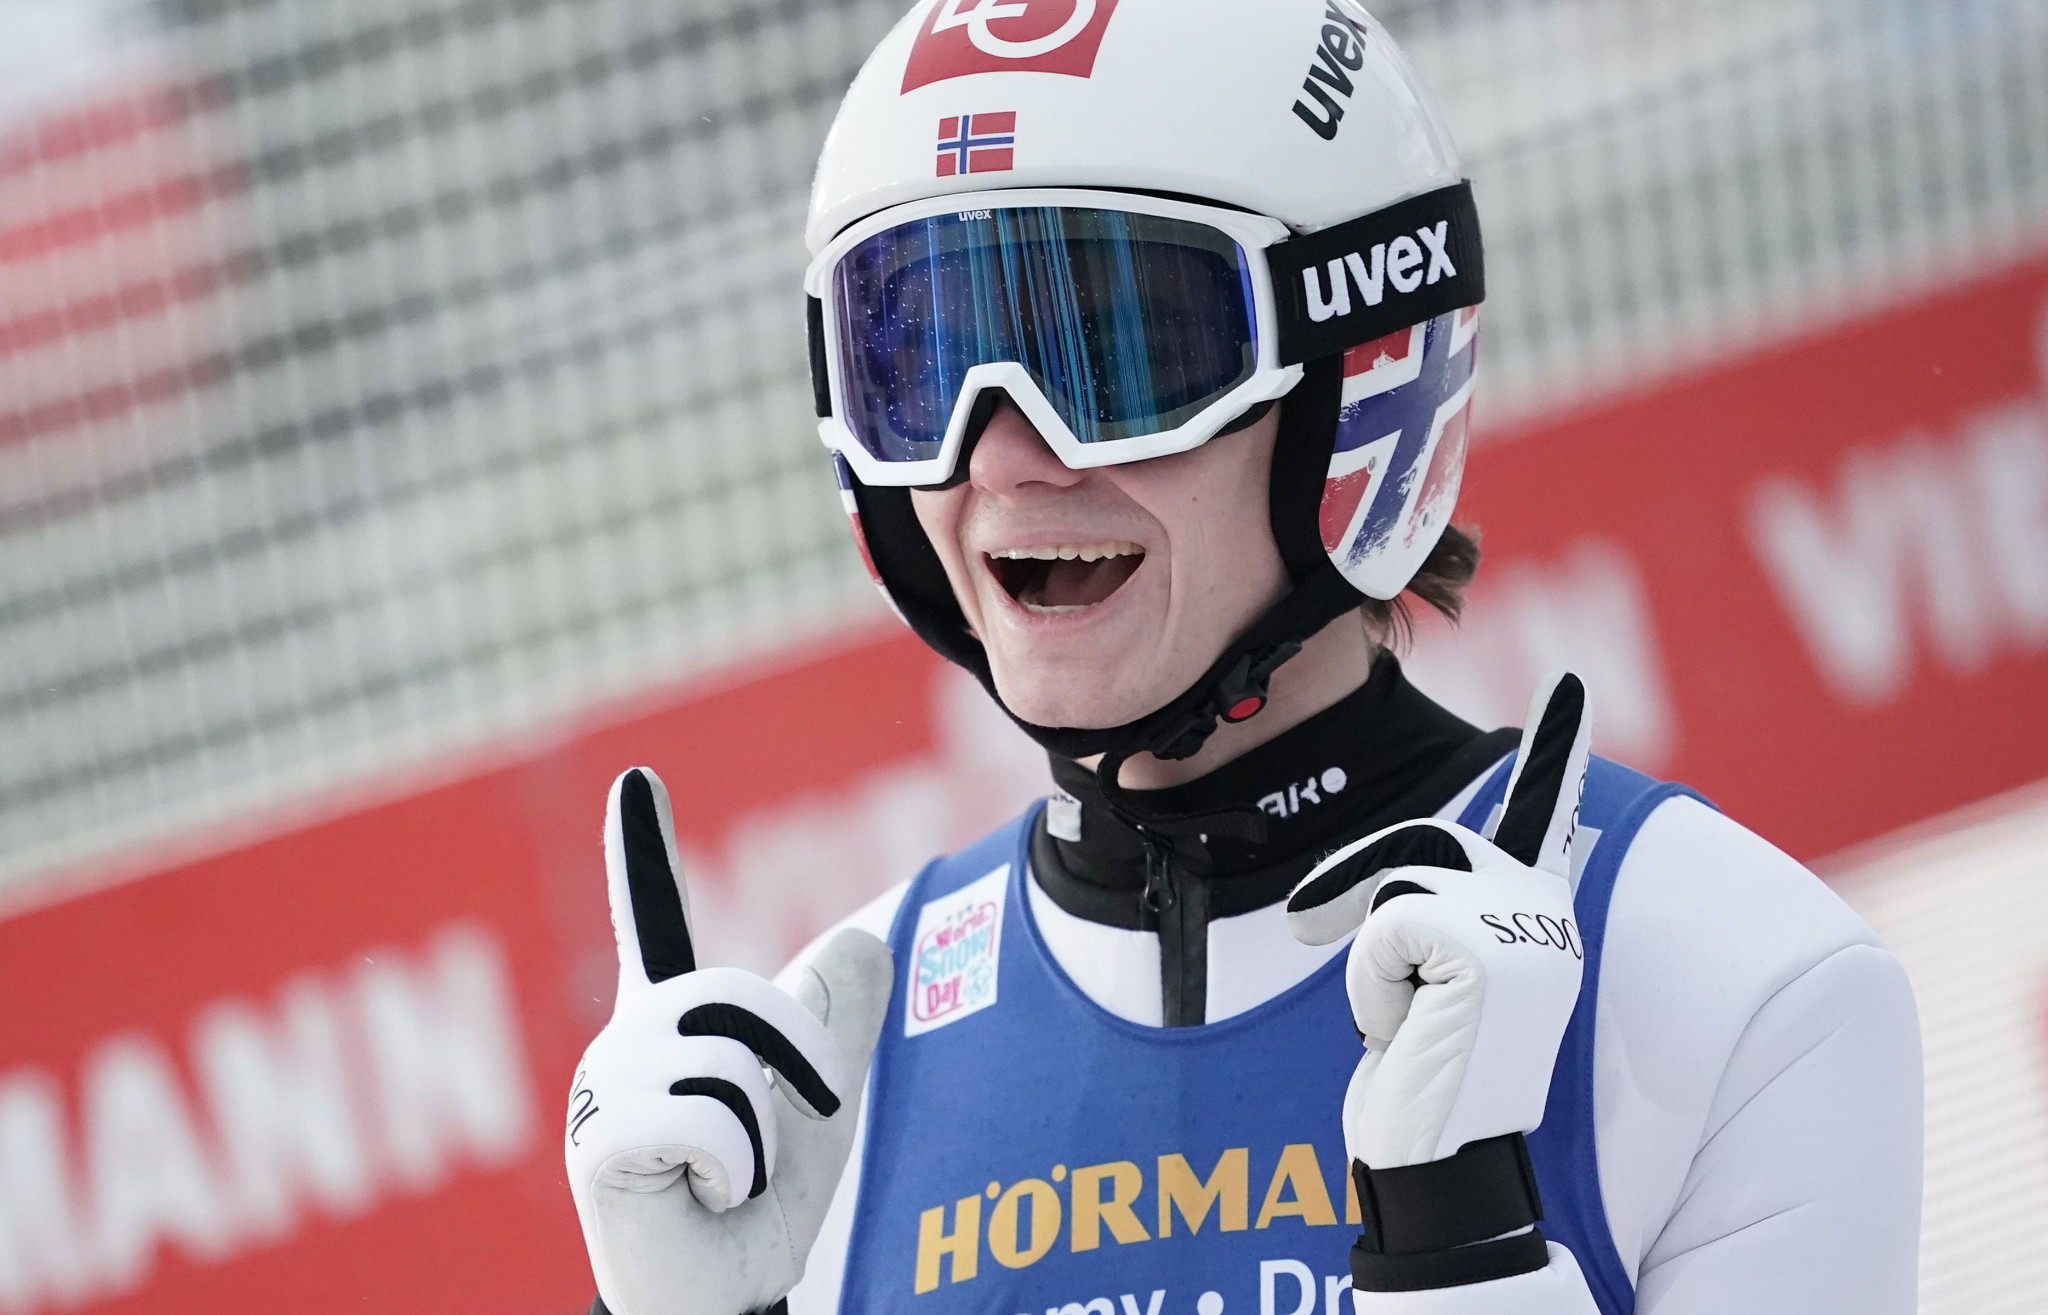 Lindvik secures second consecutive Four Hills victory as Kubacki takes overall lead